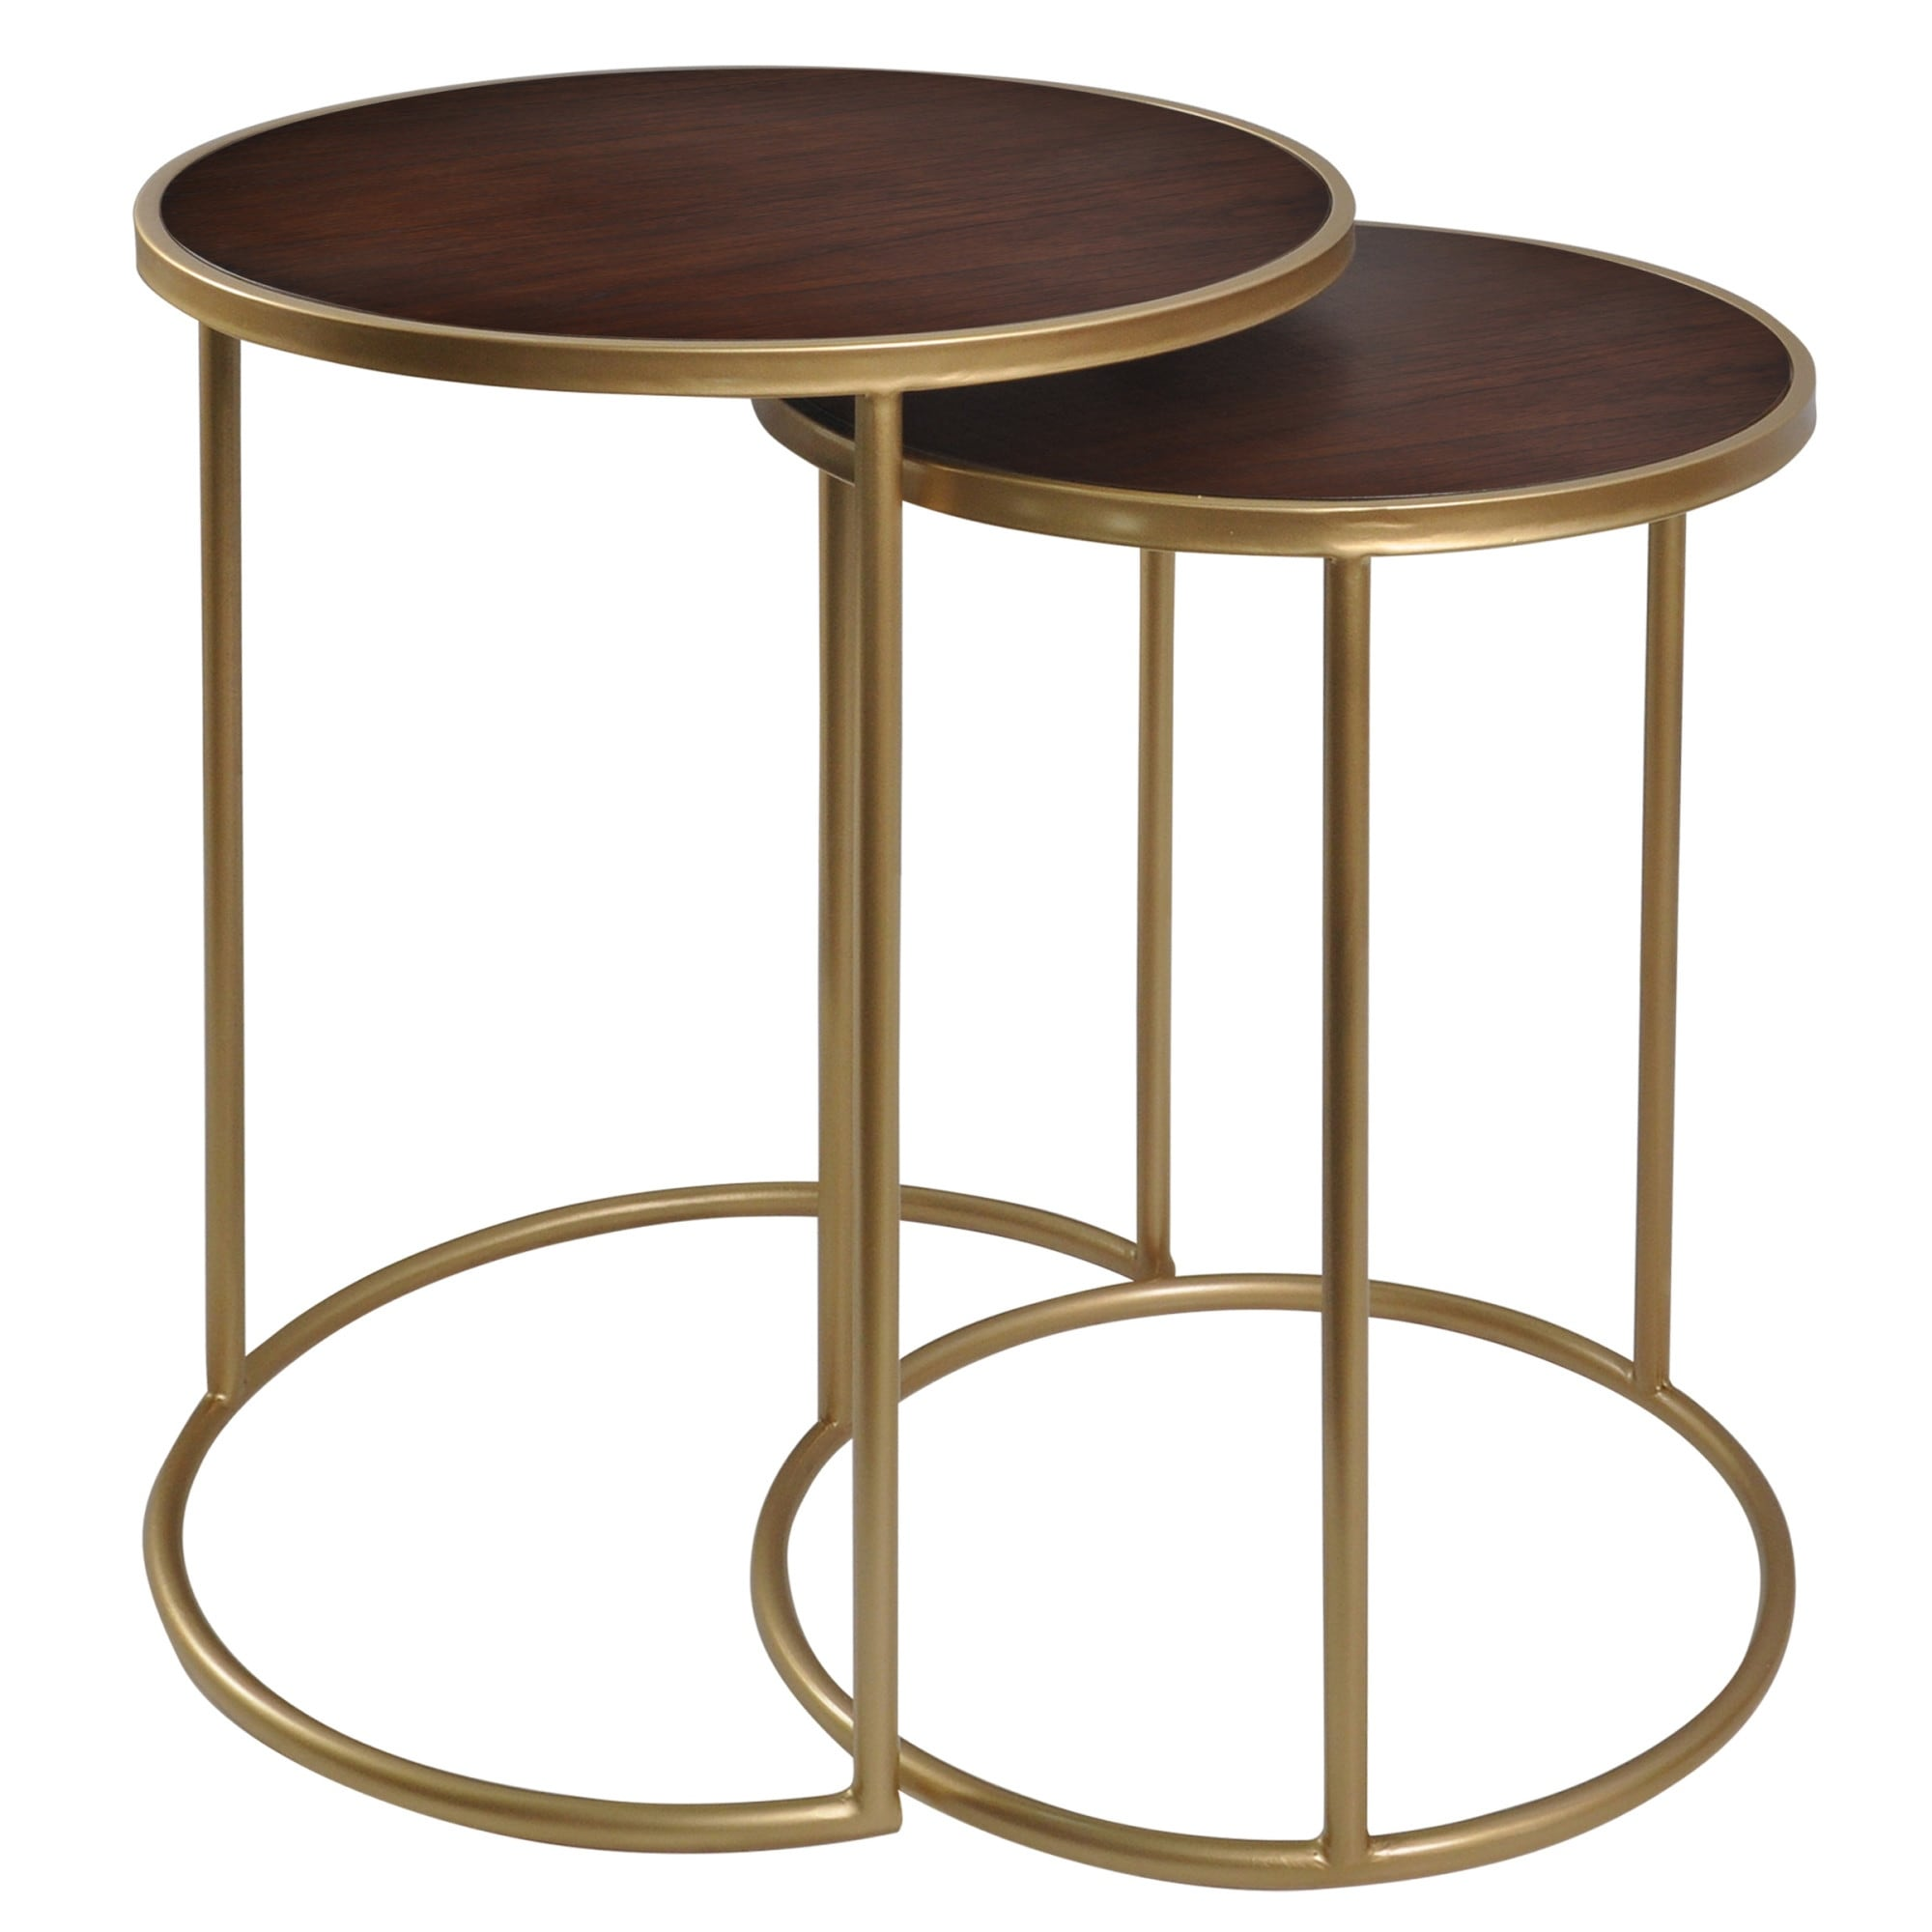 StyleCraft SC-BKF22030  Bryan Keith Mahogany Bay Multiple Sized Wood and Metal Nesting Table - Set of (2) - Gold